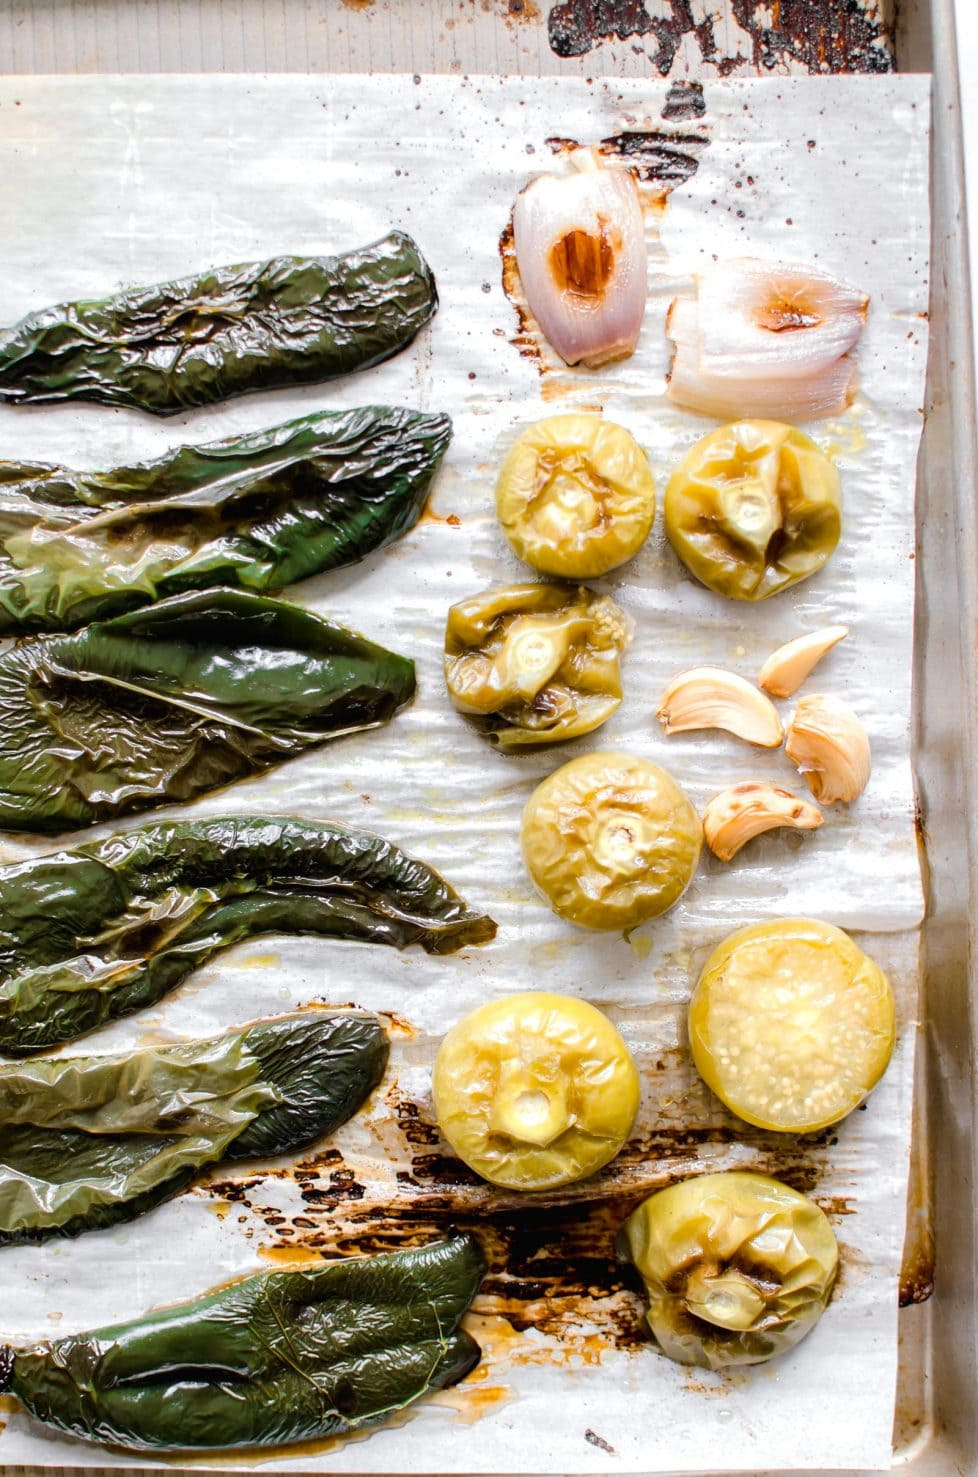 A cooking tray with roasted poblanos, garlic and tomatillos.